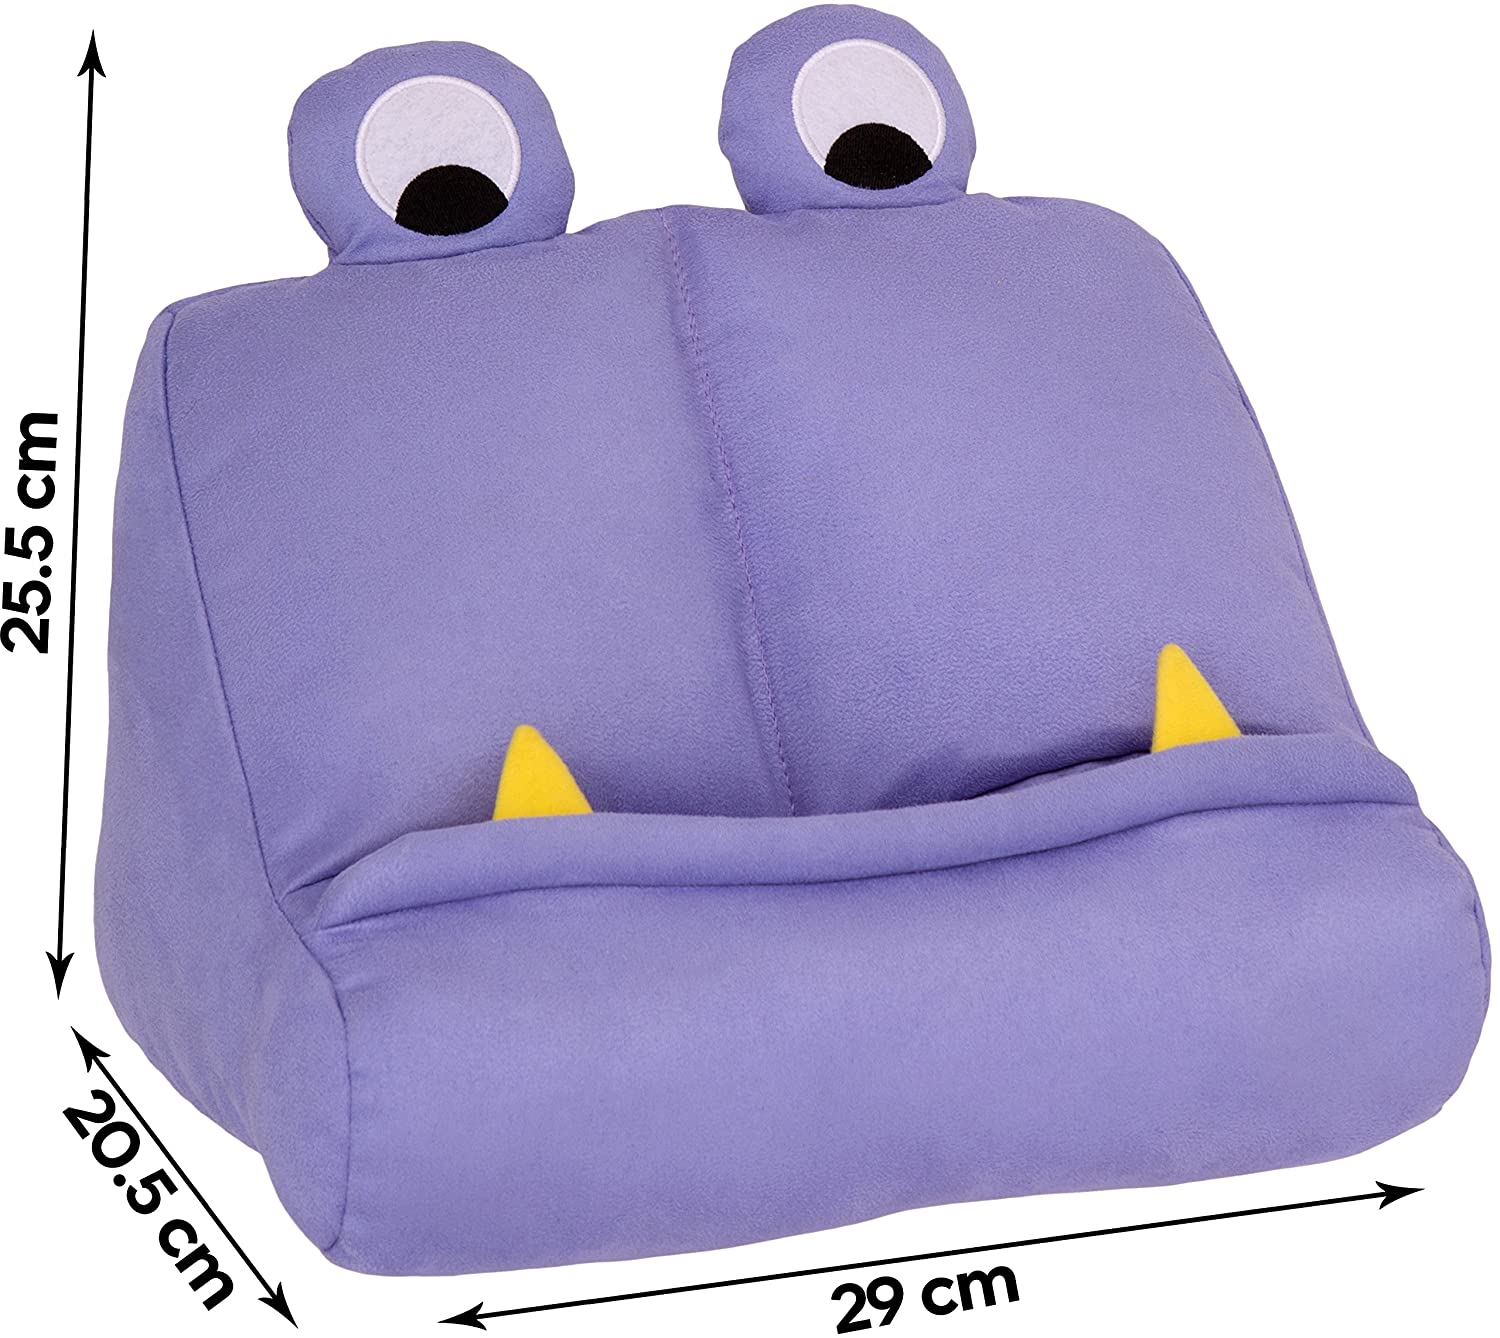 Fantastic Bookmonster Book Ipad Tablet Holder Novelty Ereader Rest Sofa Pillow Stand Gift Idea Purple Ocoug Best Dining Table And Chair Ideas Images Ocougorg